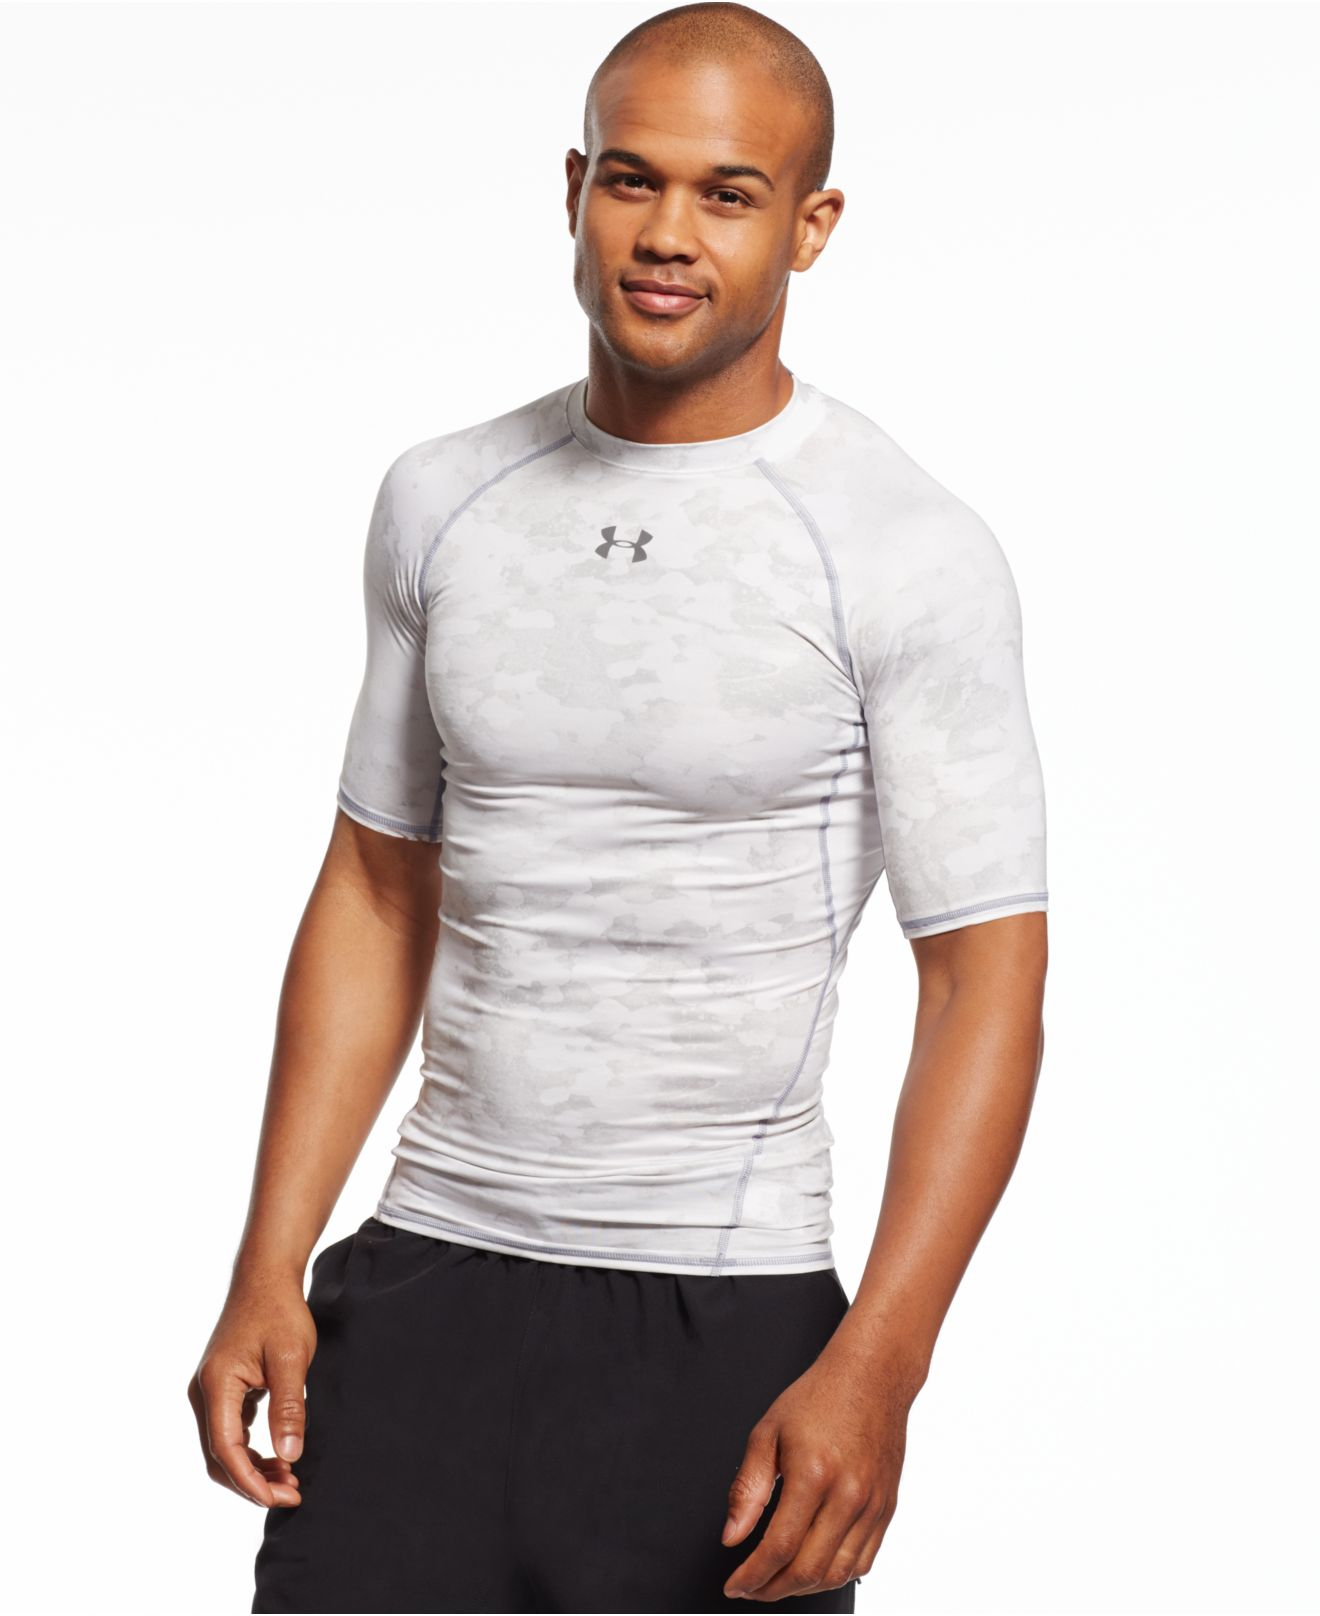 Under armour printed heatgear compression t shirt in white for Under armour heatgear white shirt